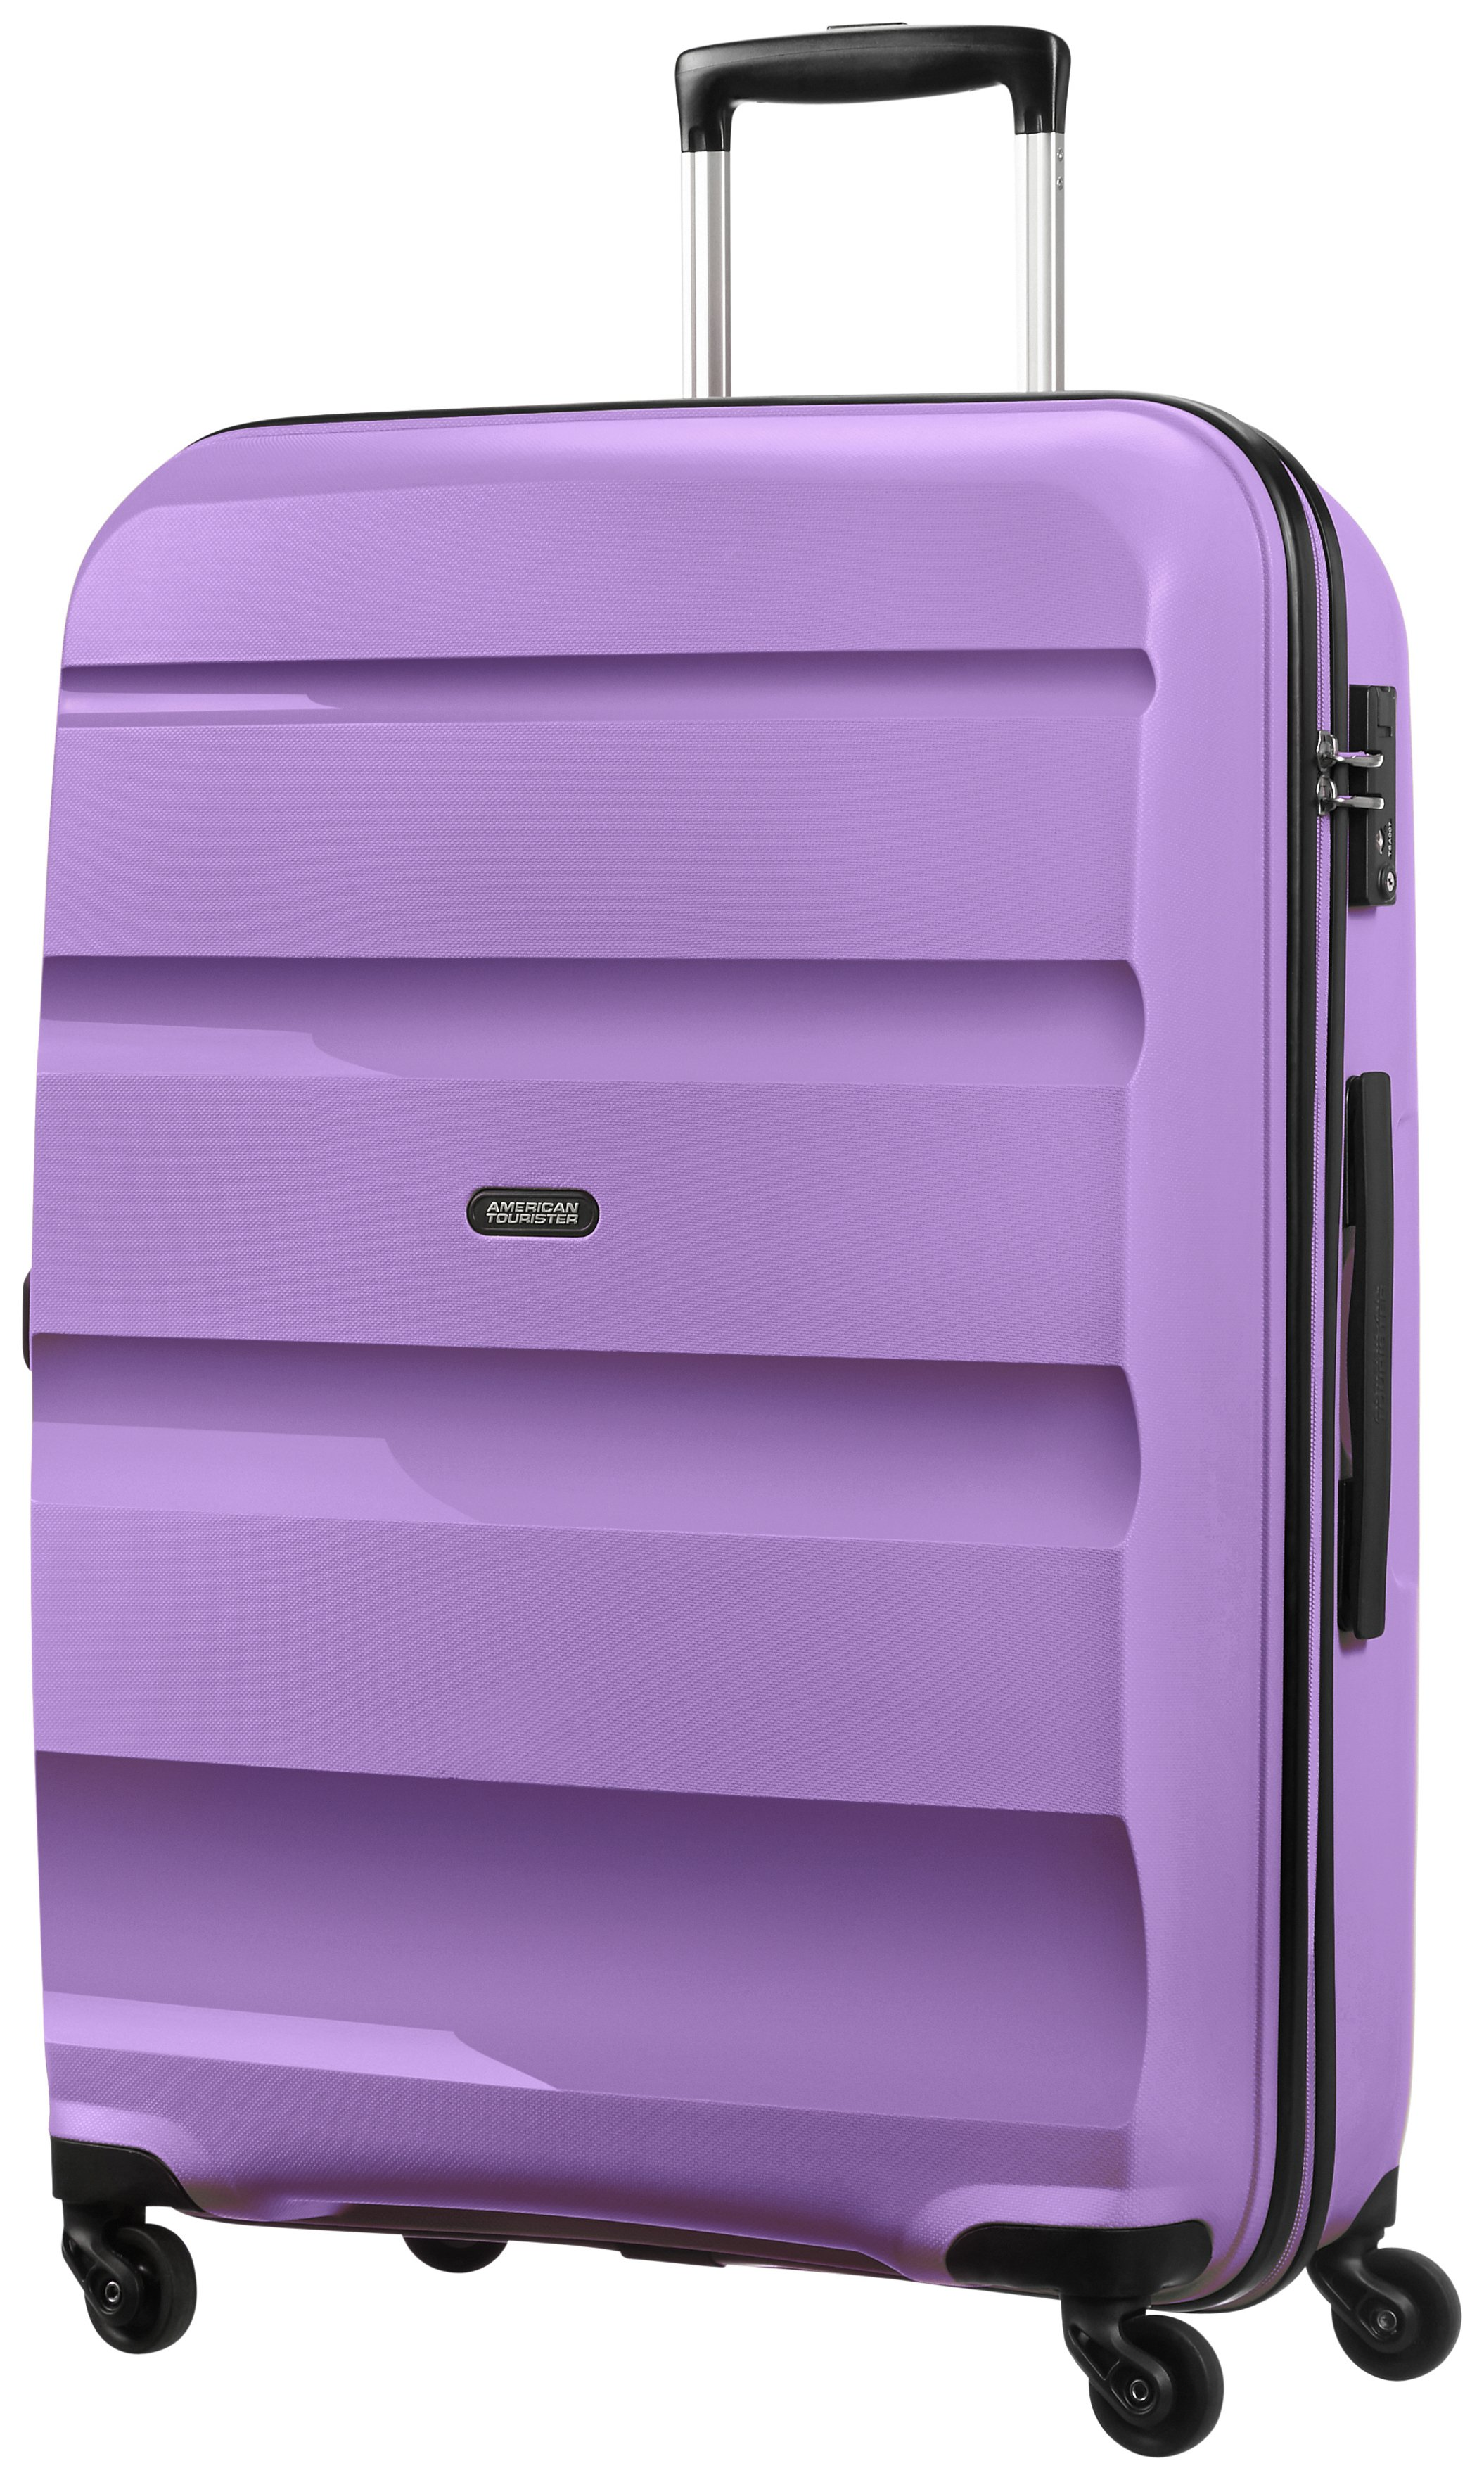 Image of American Tourister Bon Air 4 Wheel Spinner - Lilac